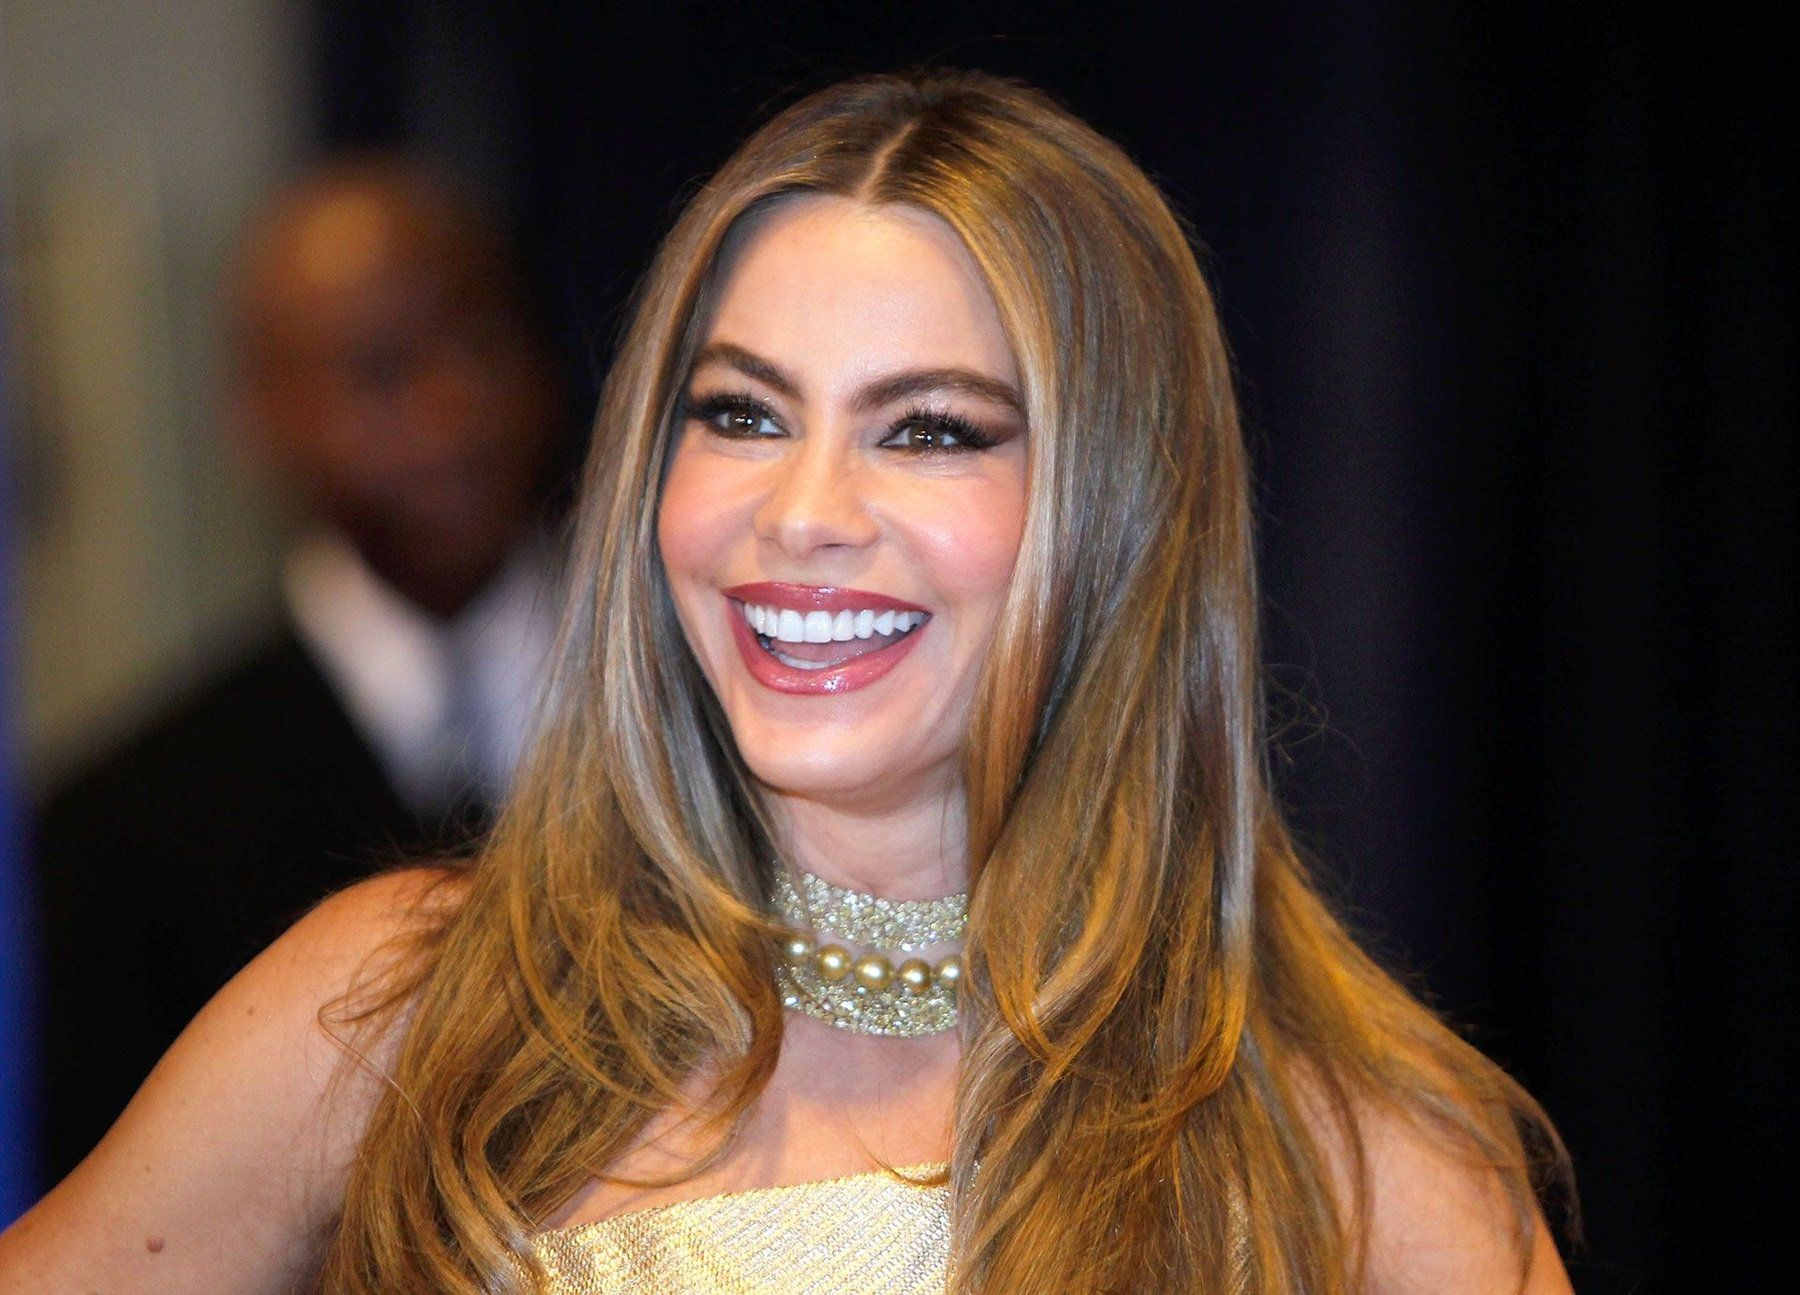 Sofia Vergara's Fans Criticize Her Over Bathing Suit